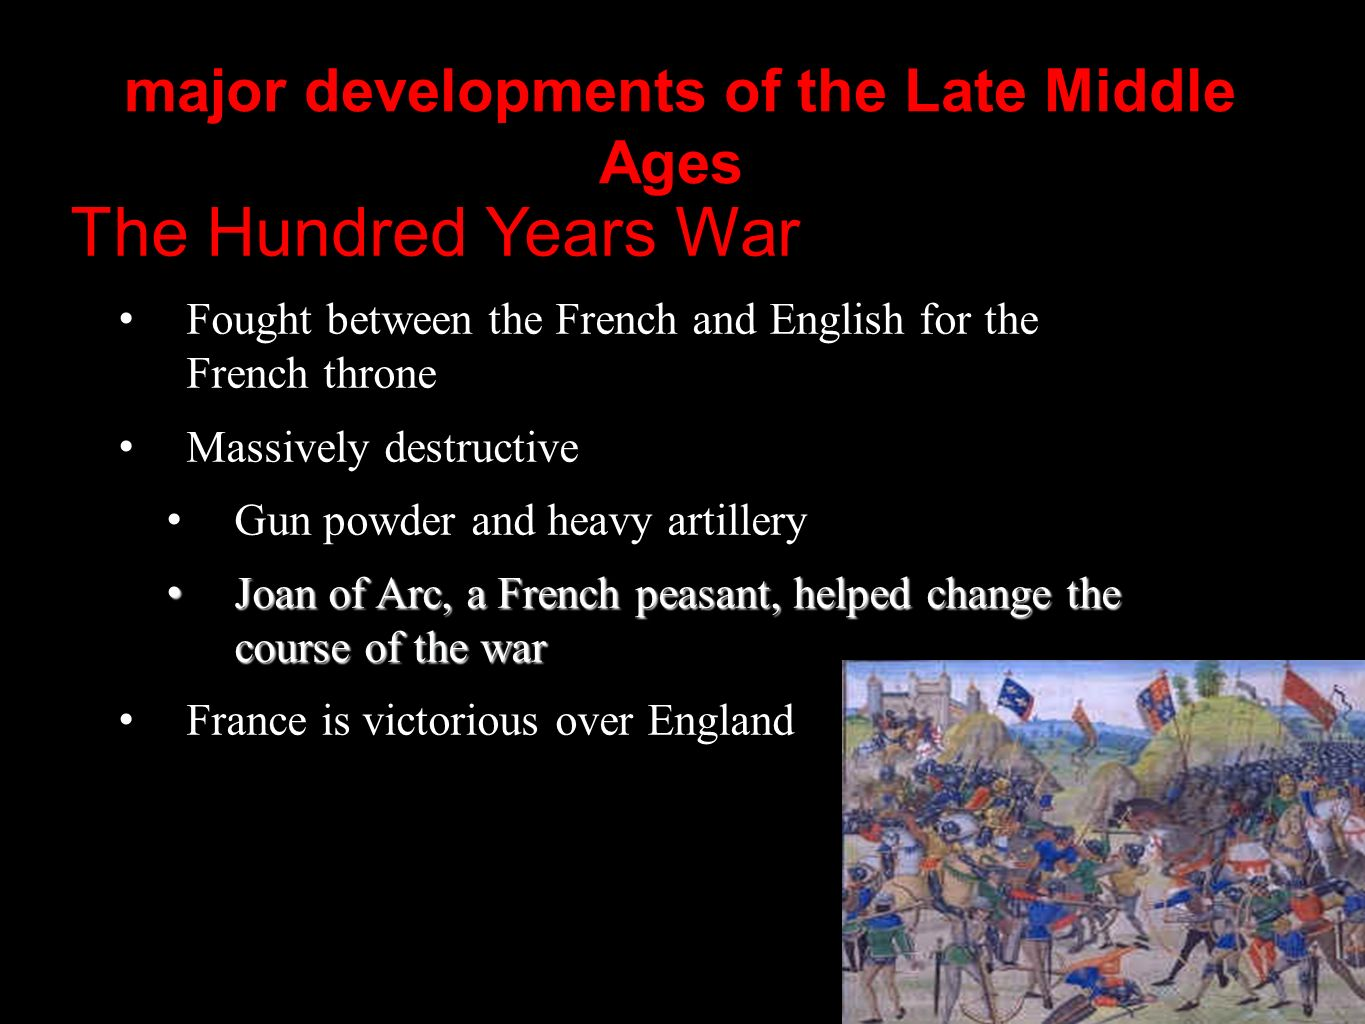 major developments of the Late Middle Ages